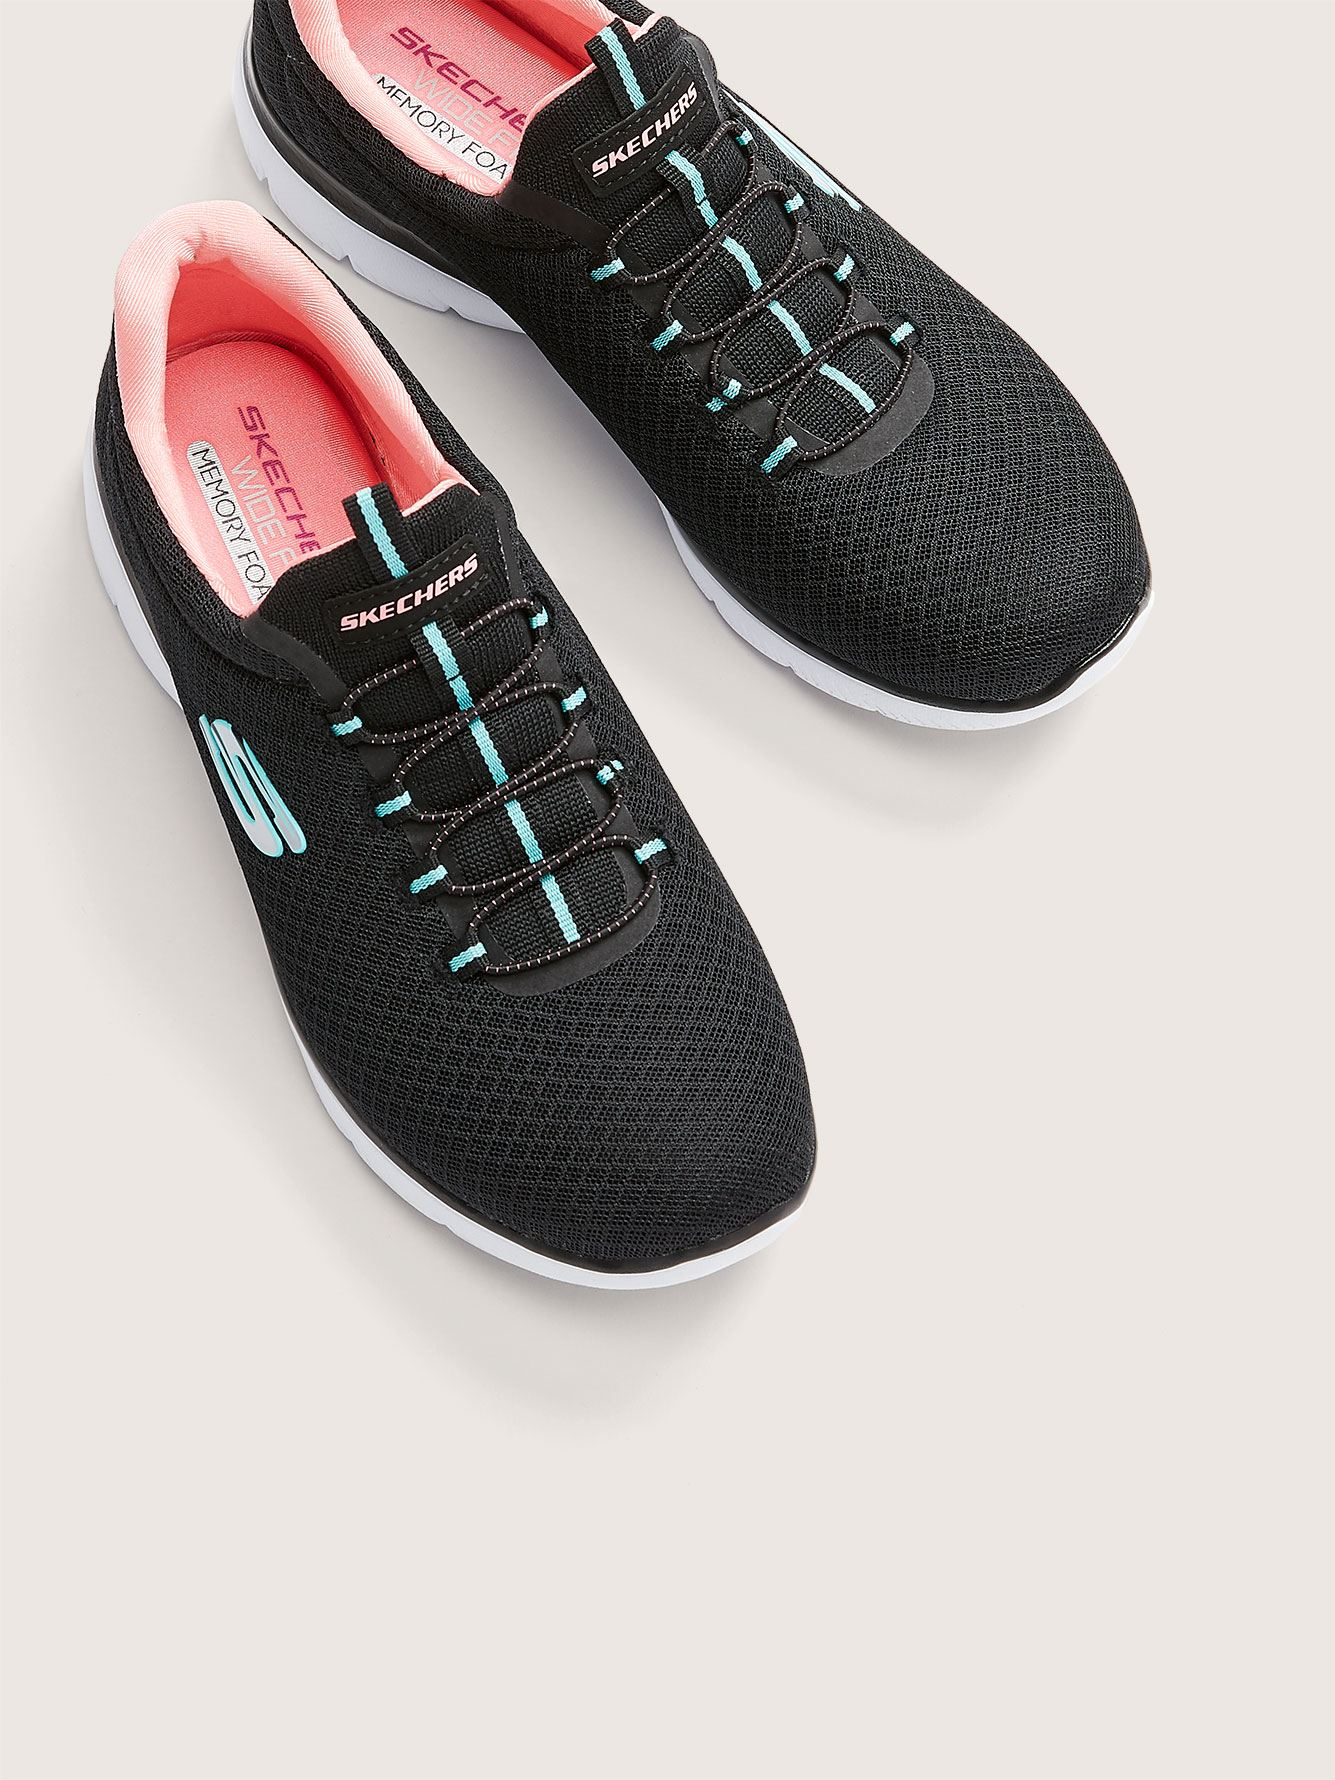 Wide Width Summits Slip-On Sneaker - Skechers